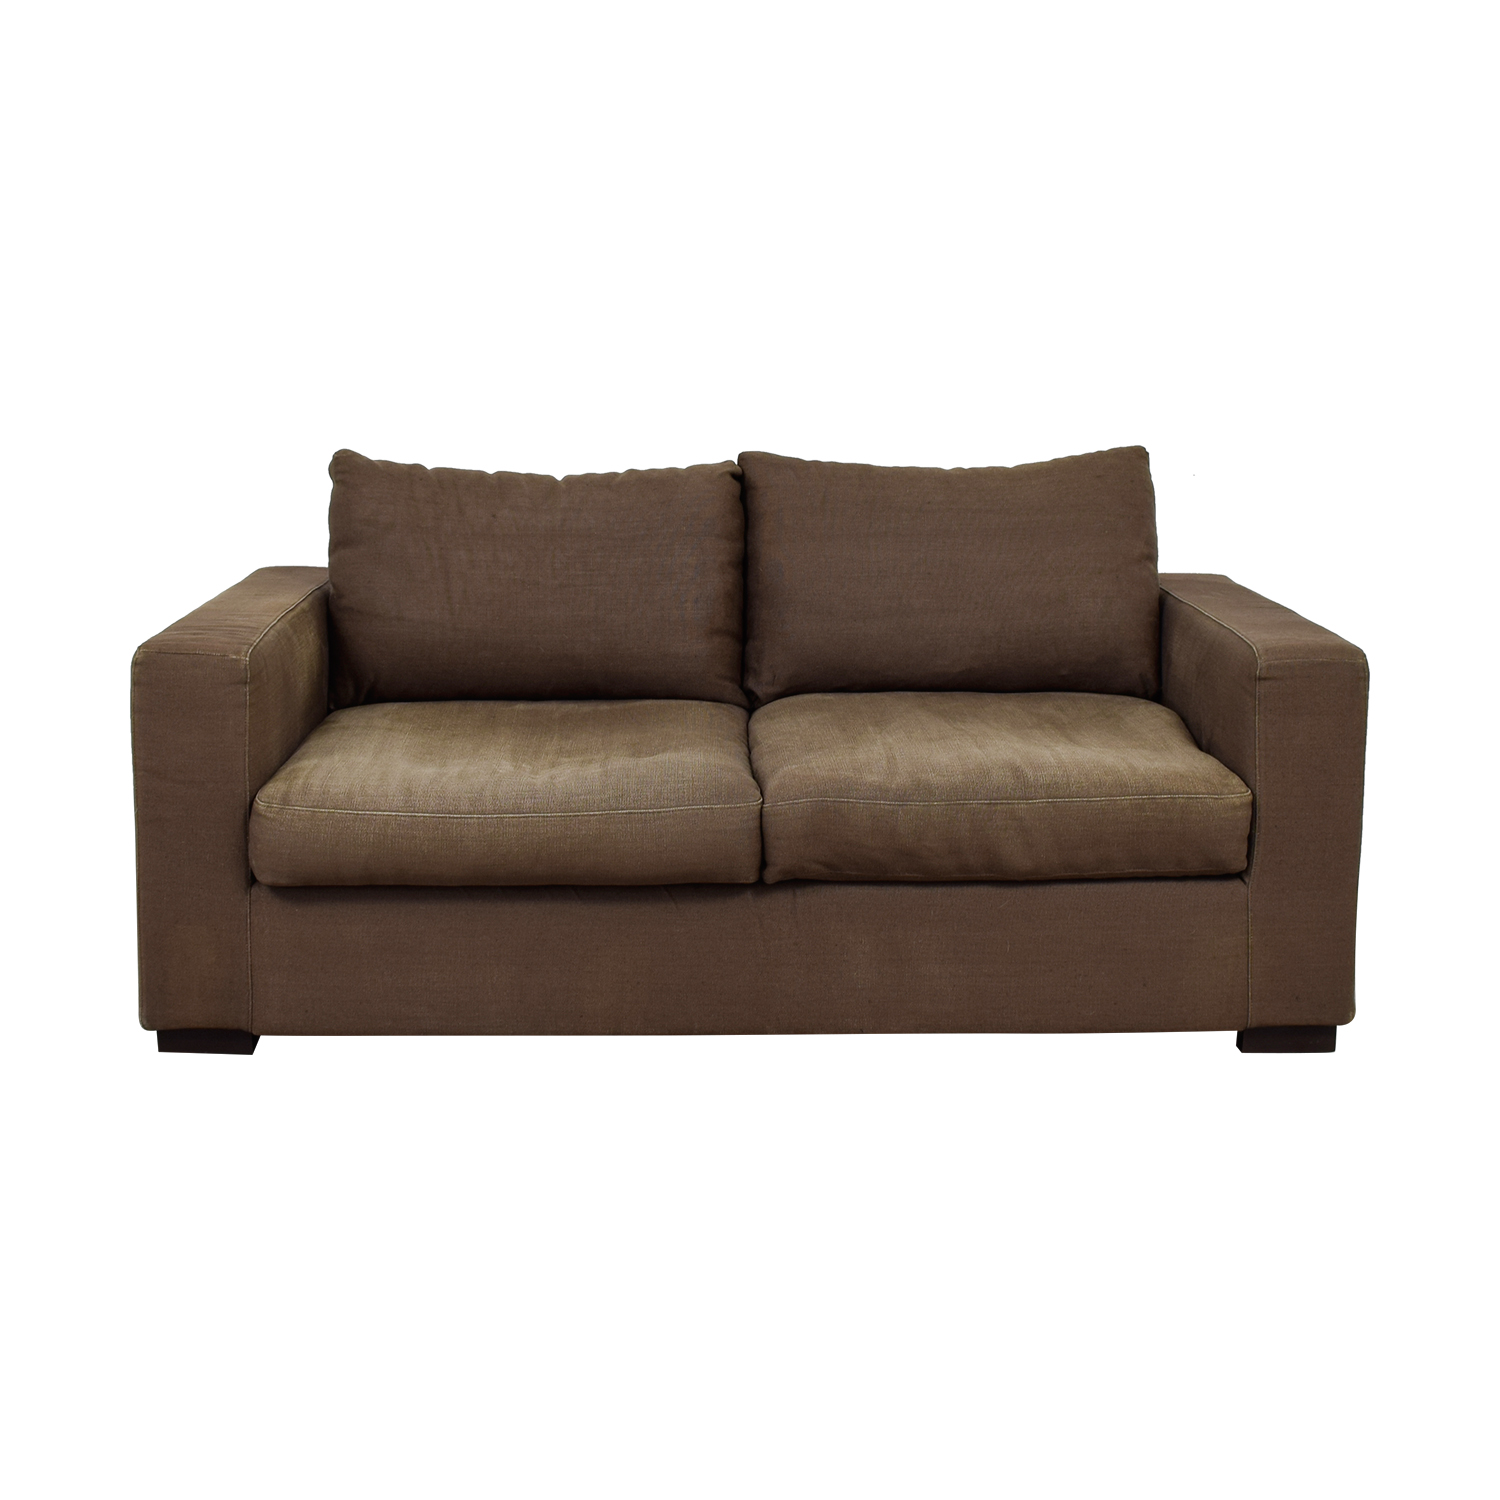 Tissus Colbert Tissus Colbert Grey Two-Cushion Sofa dimensions